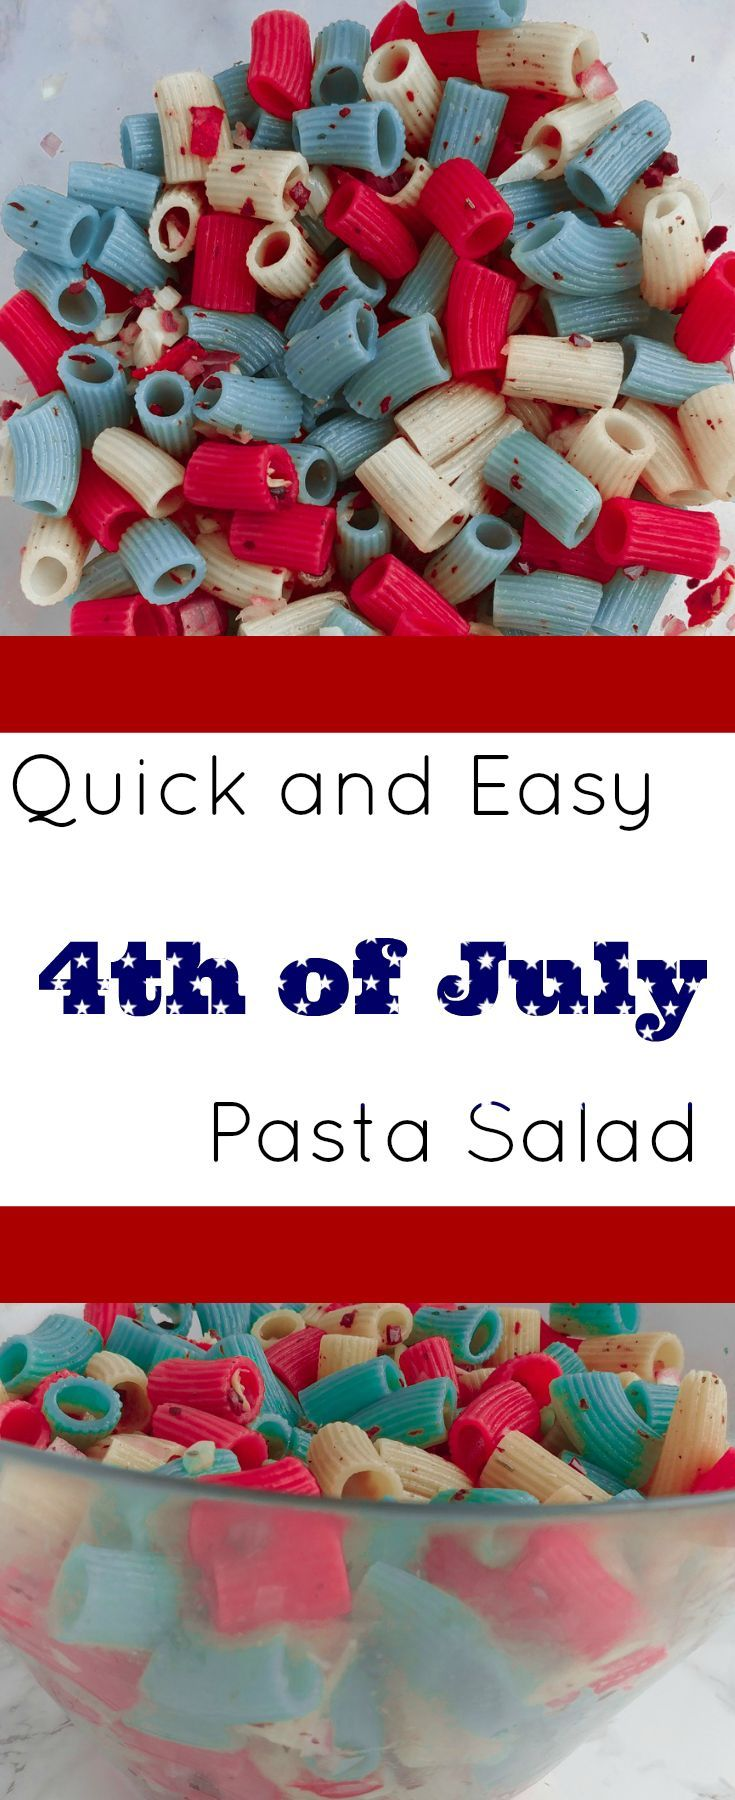 Check out this awesome idea for 4th of July! You'll win over guests at your backyard barbecue with this red, white, and blue pasta salad!